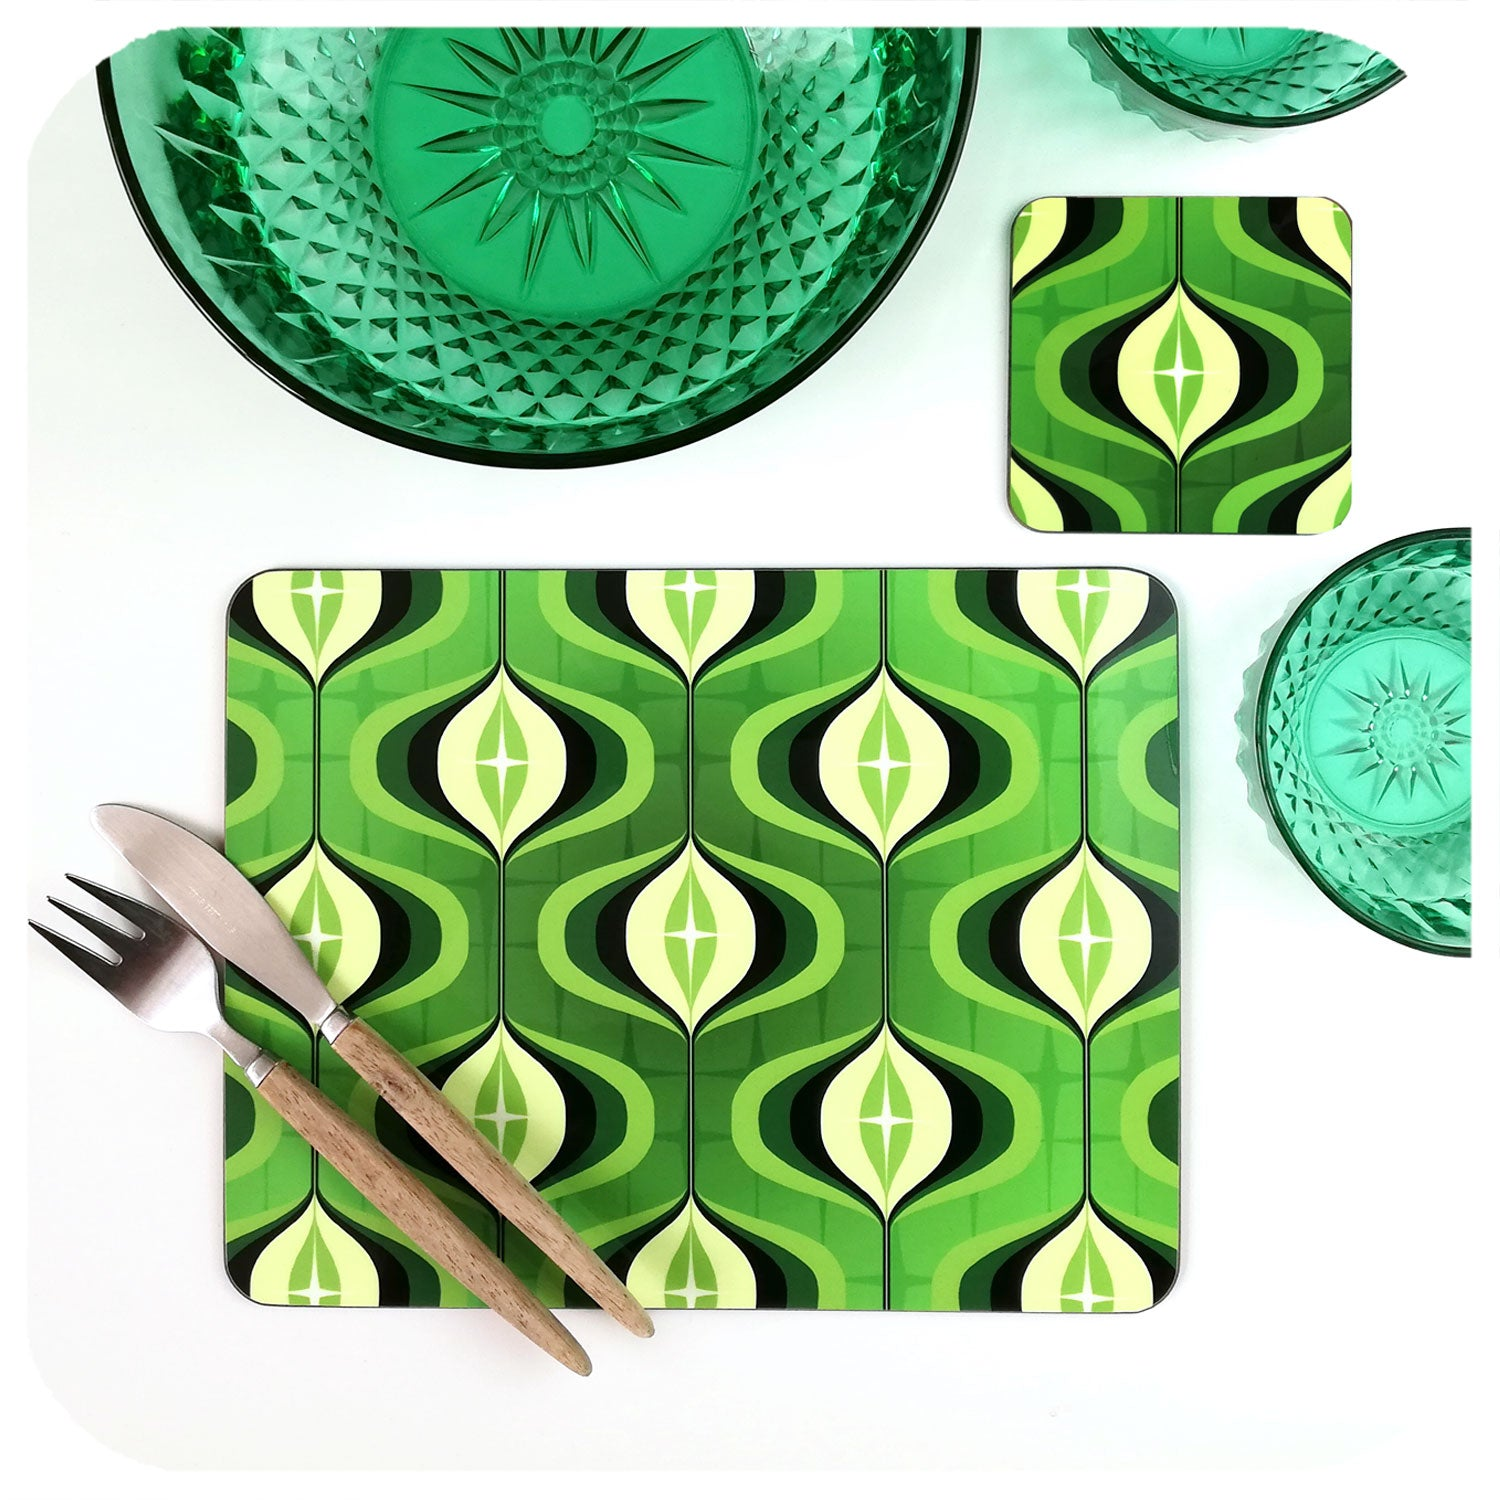 1970s Op Art Placemat and matching coaster in green | The Inkabilly Emporium